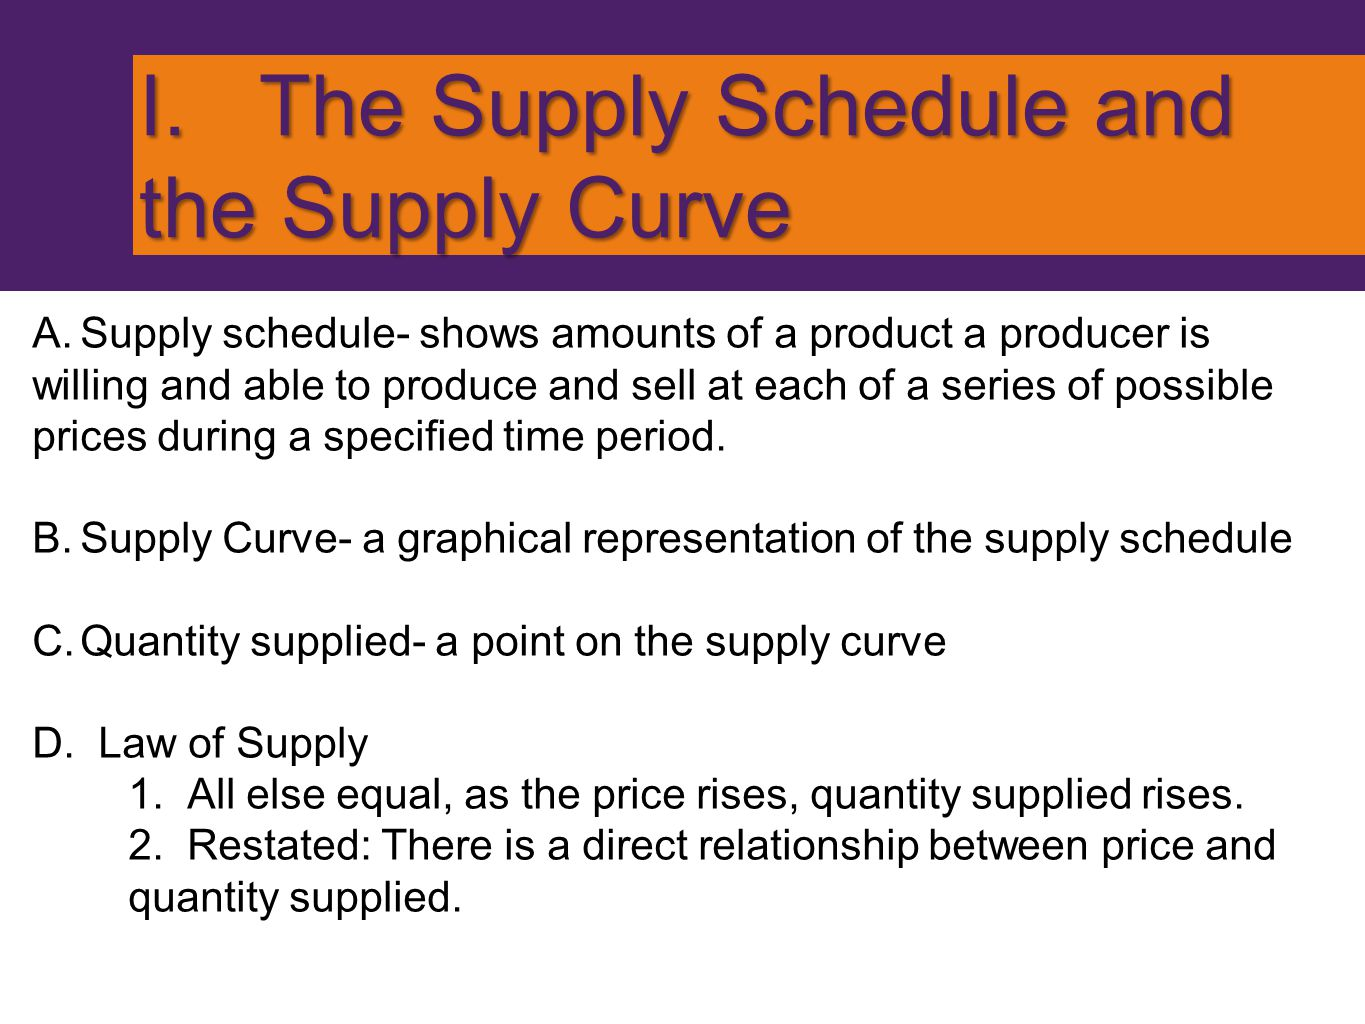 Supply Schedule and Supply Curve PriceQuantity $ 822 $ 714 $ 68 $ 56 $ 45 $ 34 $ 23 Quantity Price